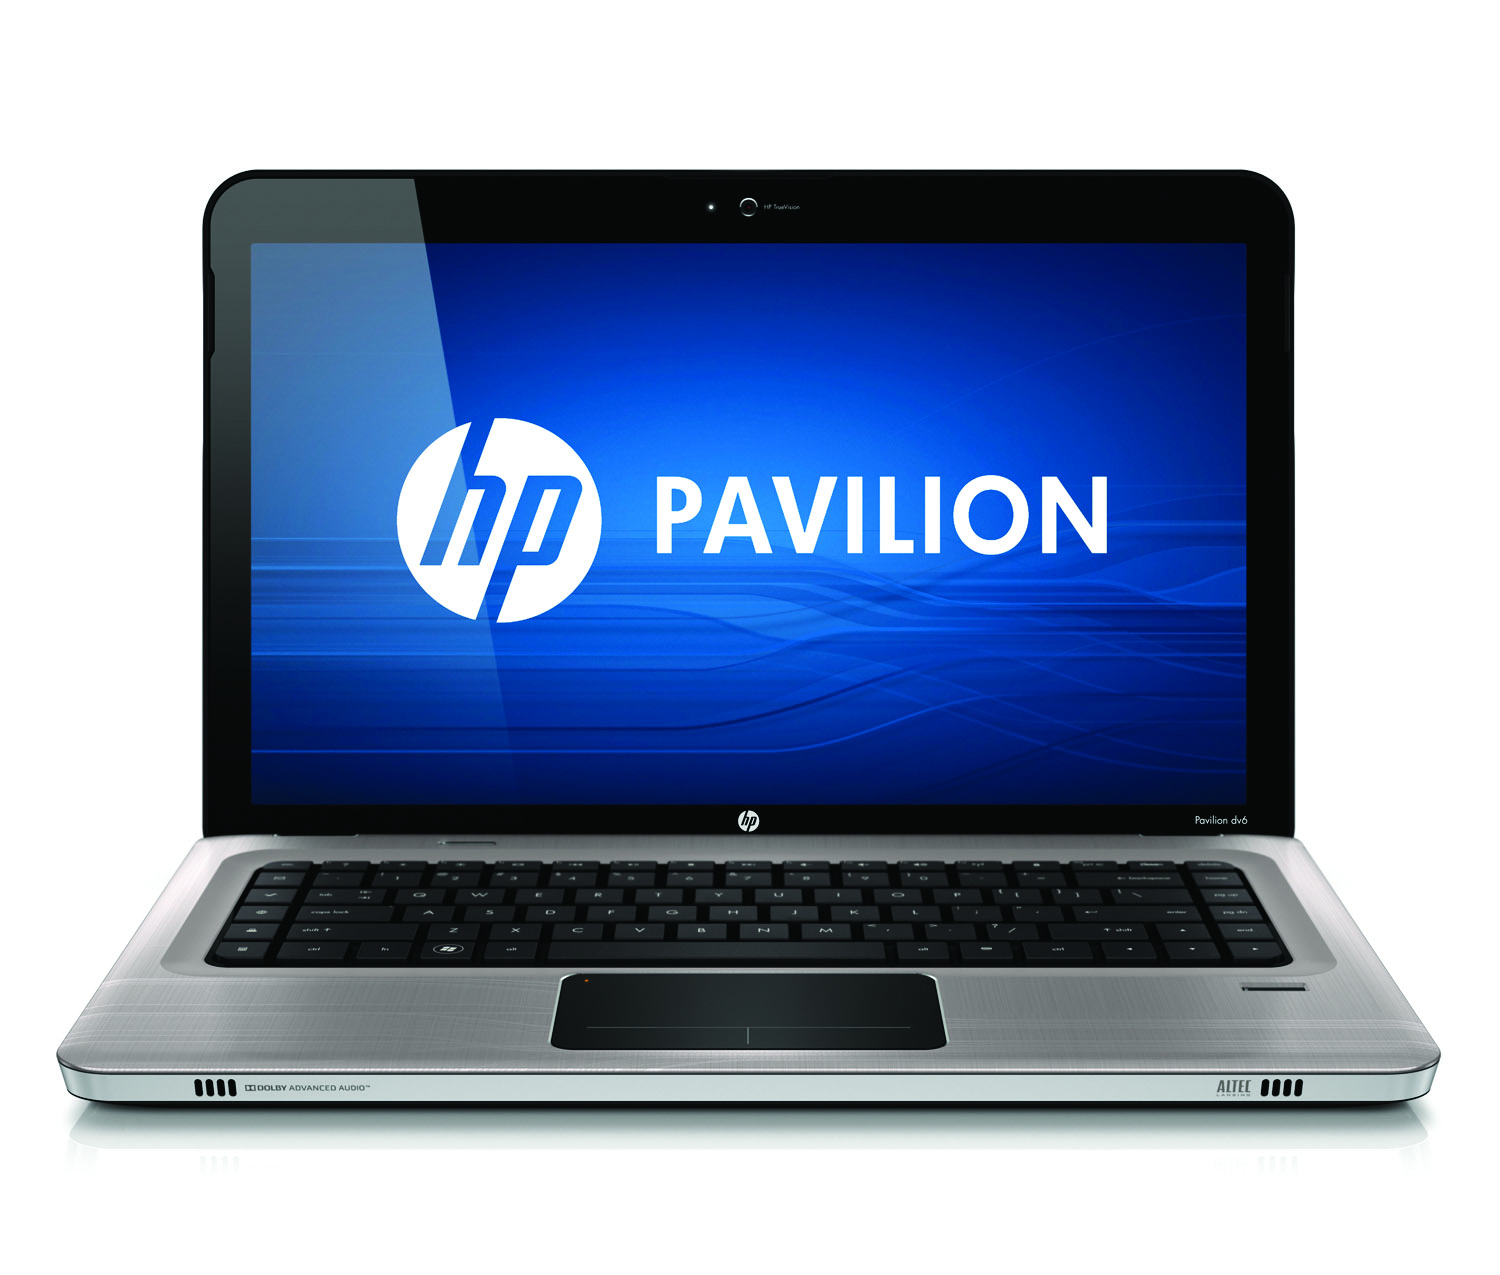 HP Pavilion dv6 Entertainment PC, argento, front open